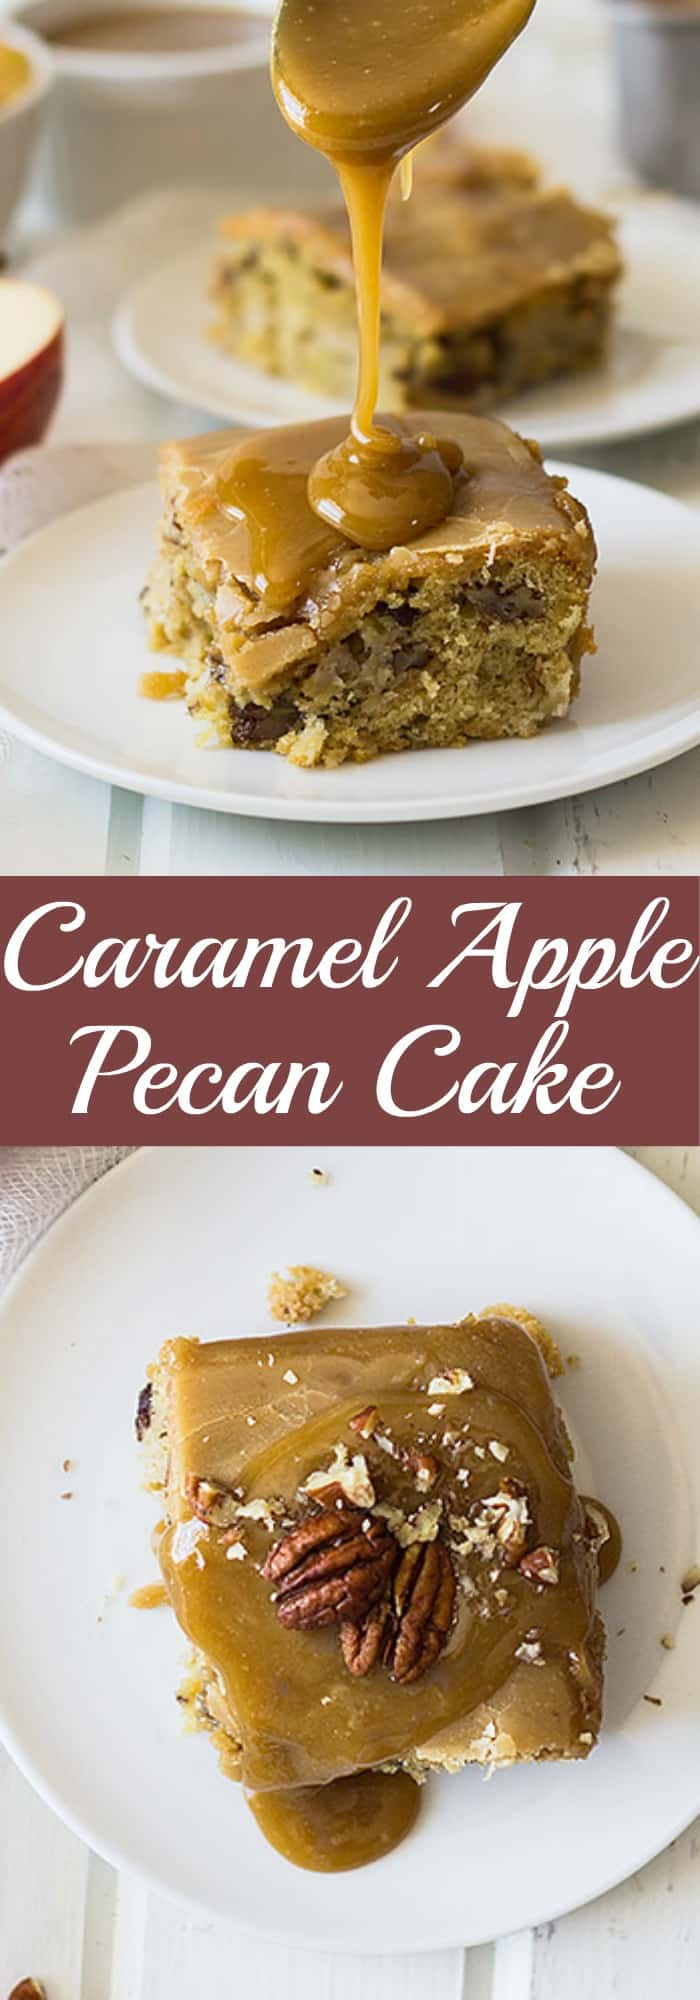 This Caramel Apple Pecan Cake is filled with tender apples, crunchy pecans and topped with a luscious caramel frosting! | www.countrysidecravings.com